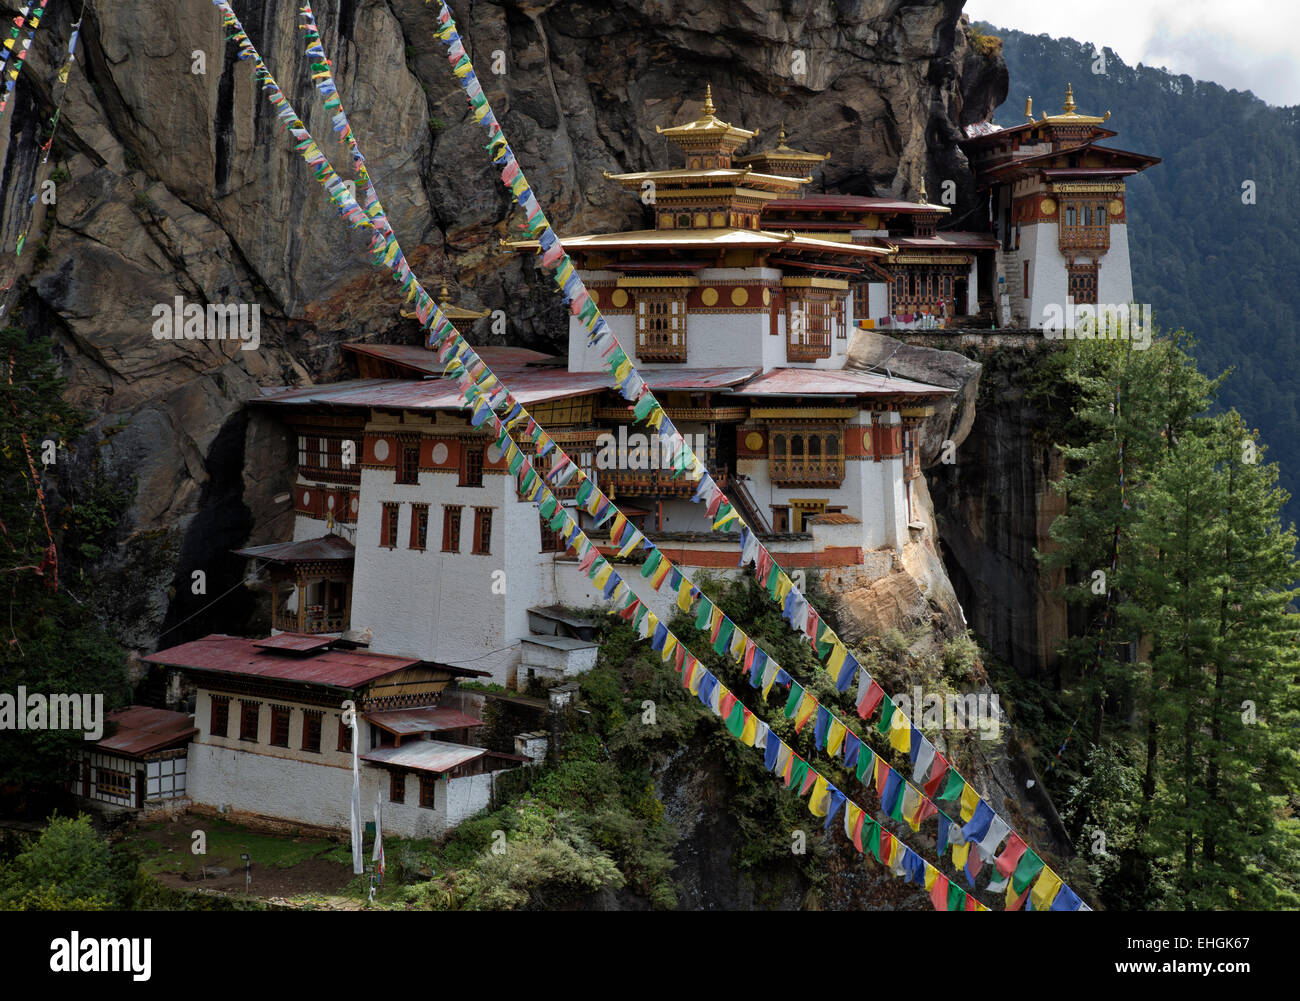 BHUTAN - Prayer flags at Taktshang Goemba, Tiger's Nest Monastery, perched on the side of a cliff high above - Stock Image